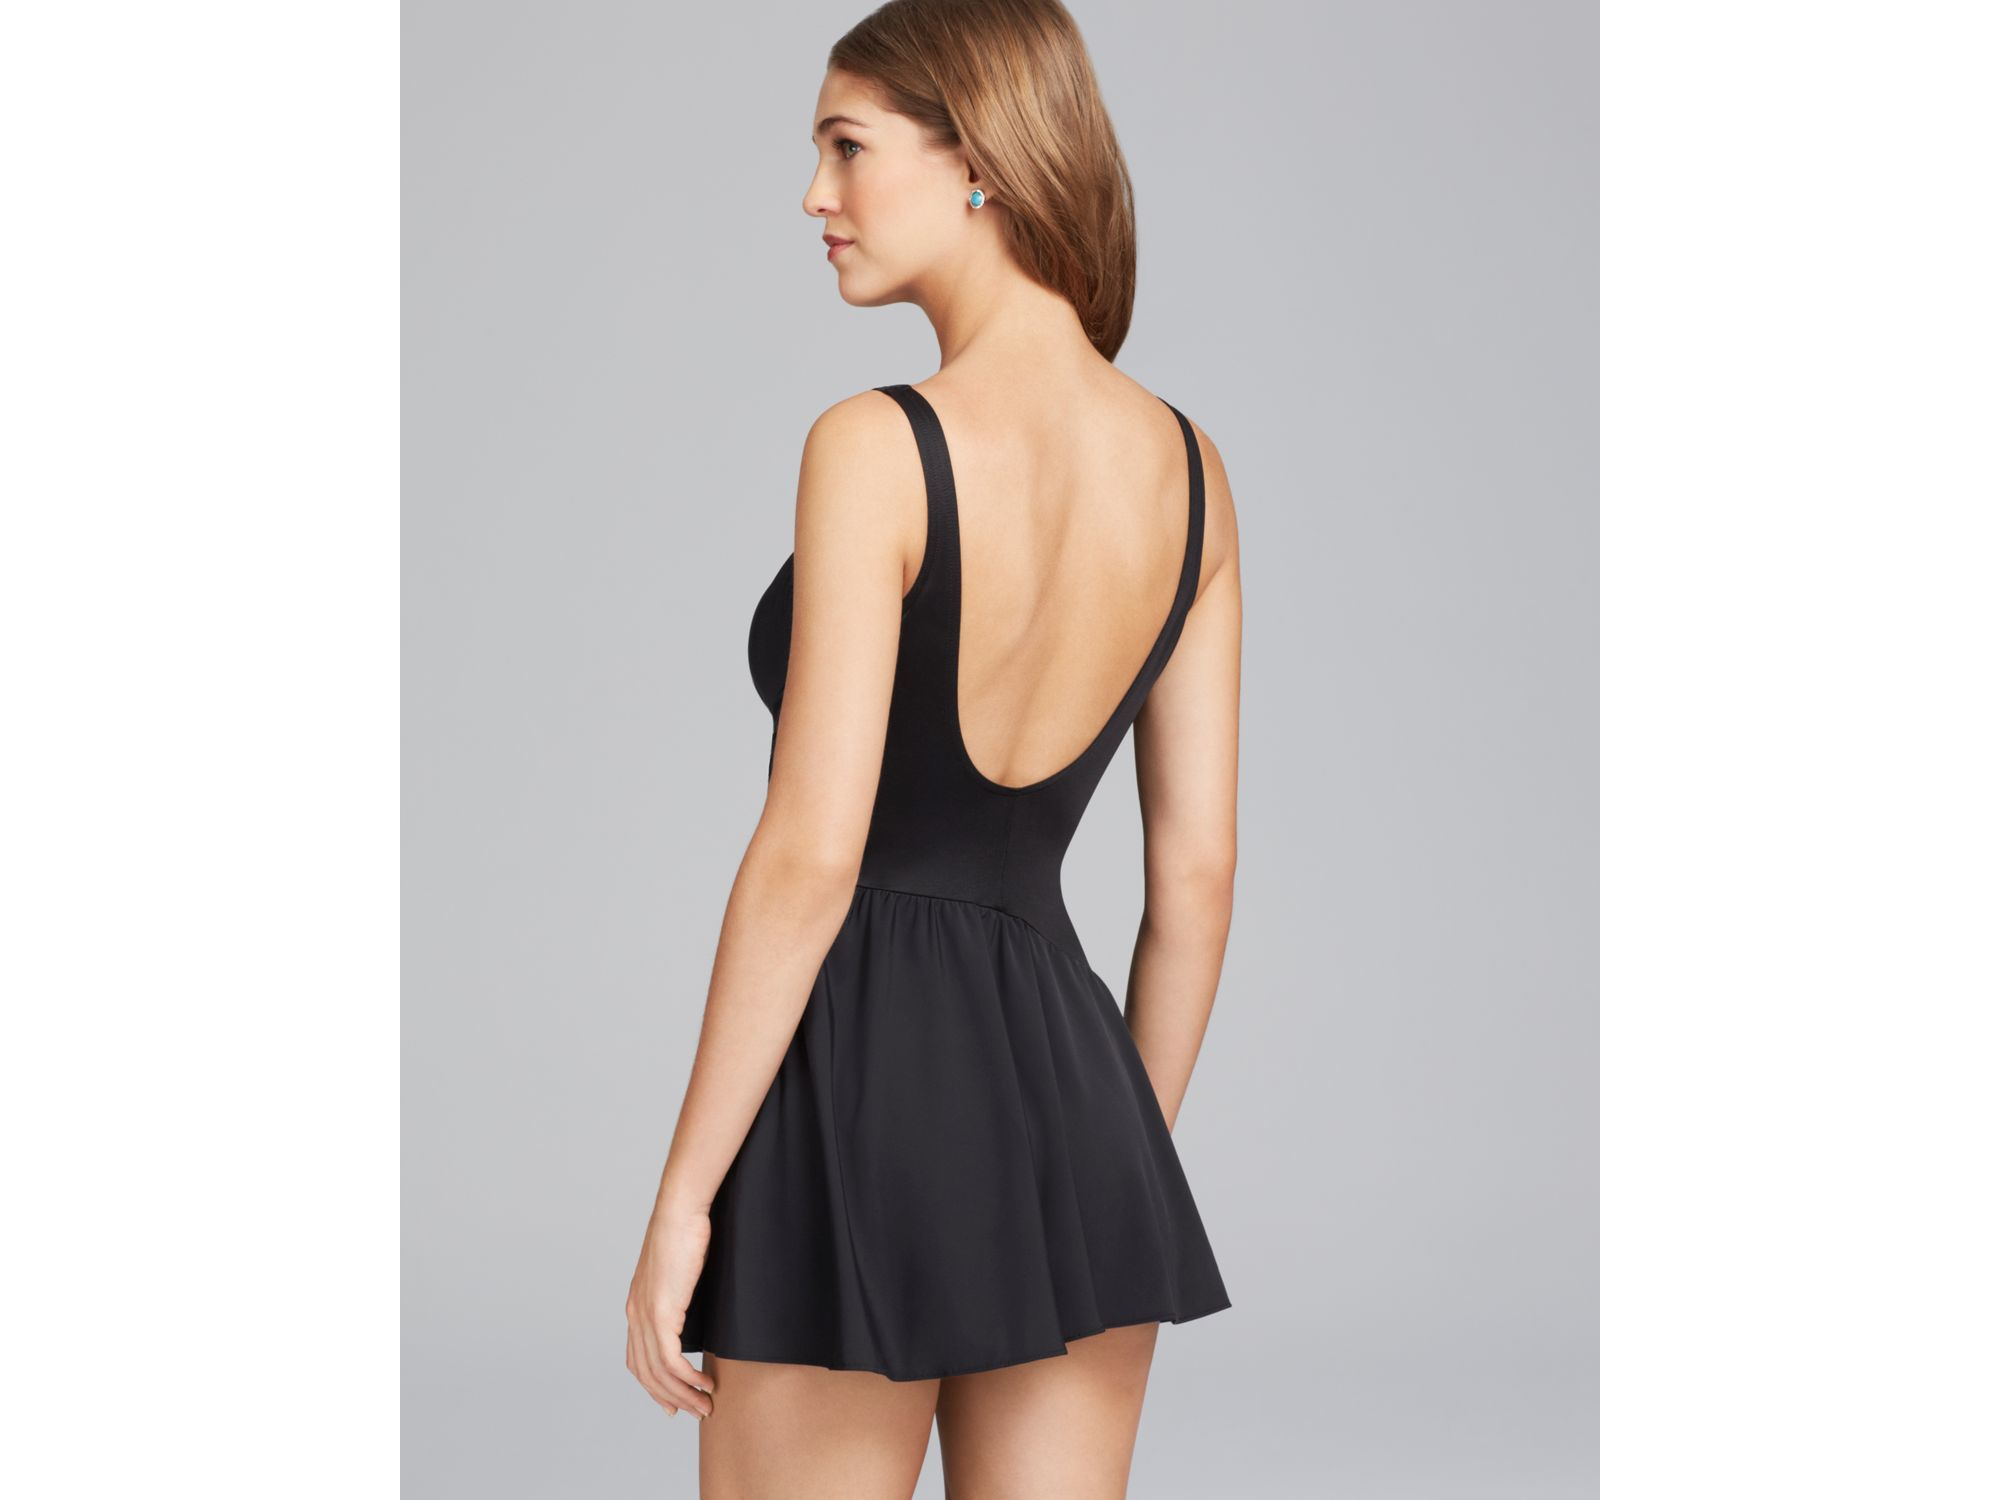 468bb8756c7 Miraclesuit Must Haves Aurora Skirted One Piece Swimdress in Black ...